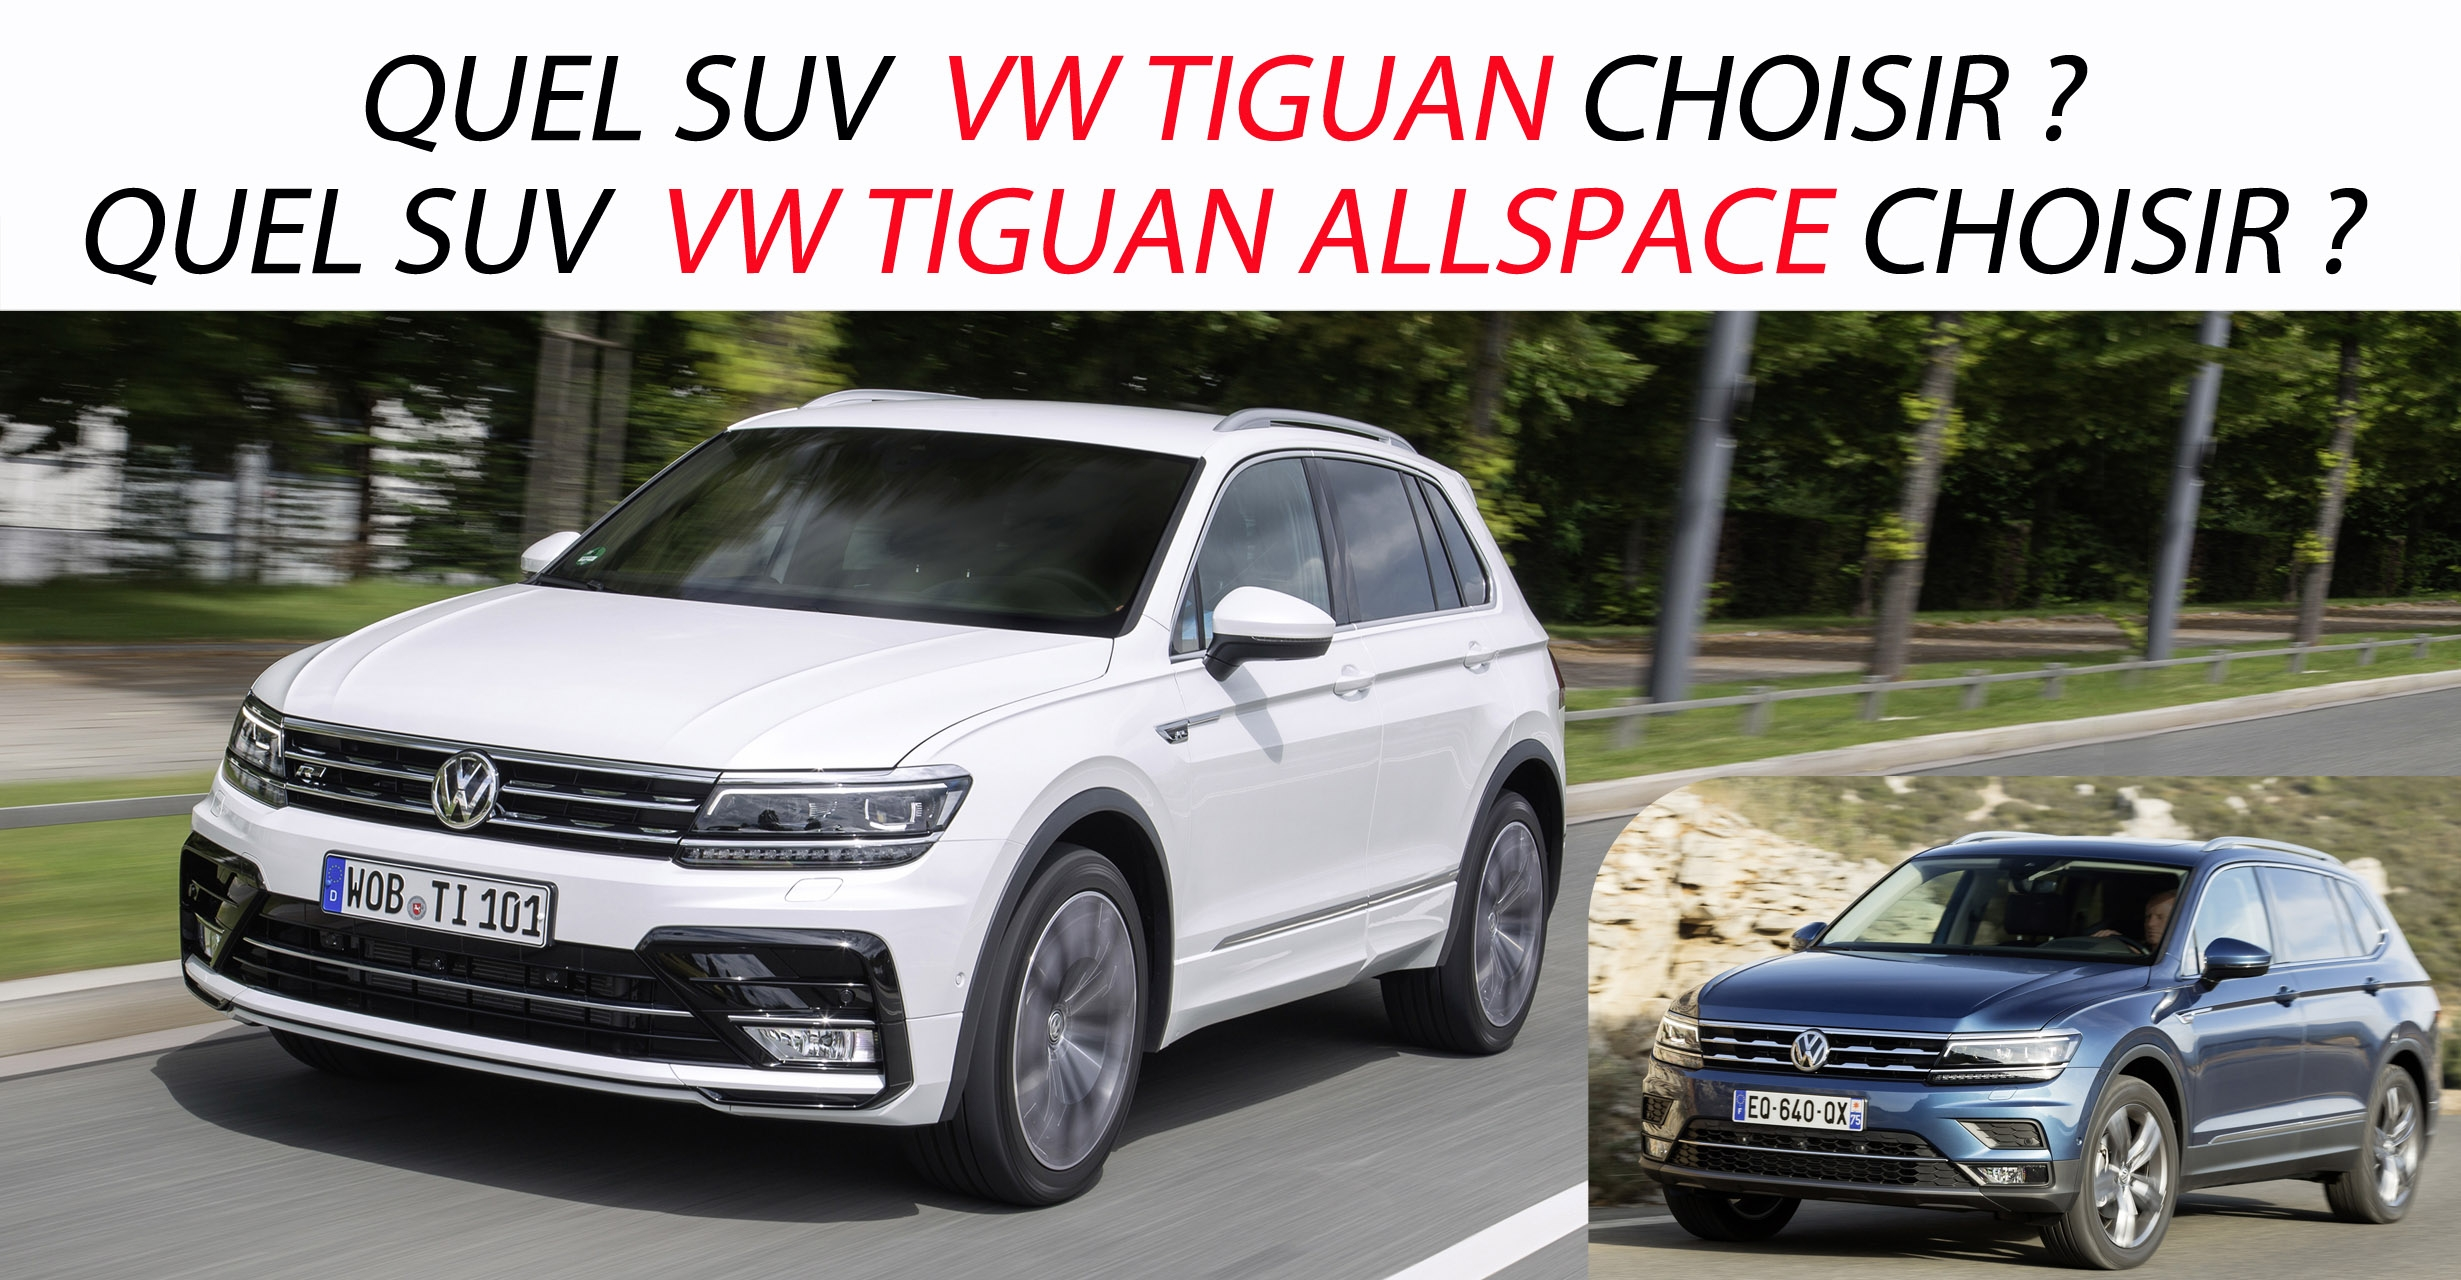 quel suv volkswagen tiguan et tiguan allspace choisir. Black Bedroom Furniture Sets. Home Design Ideas